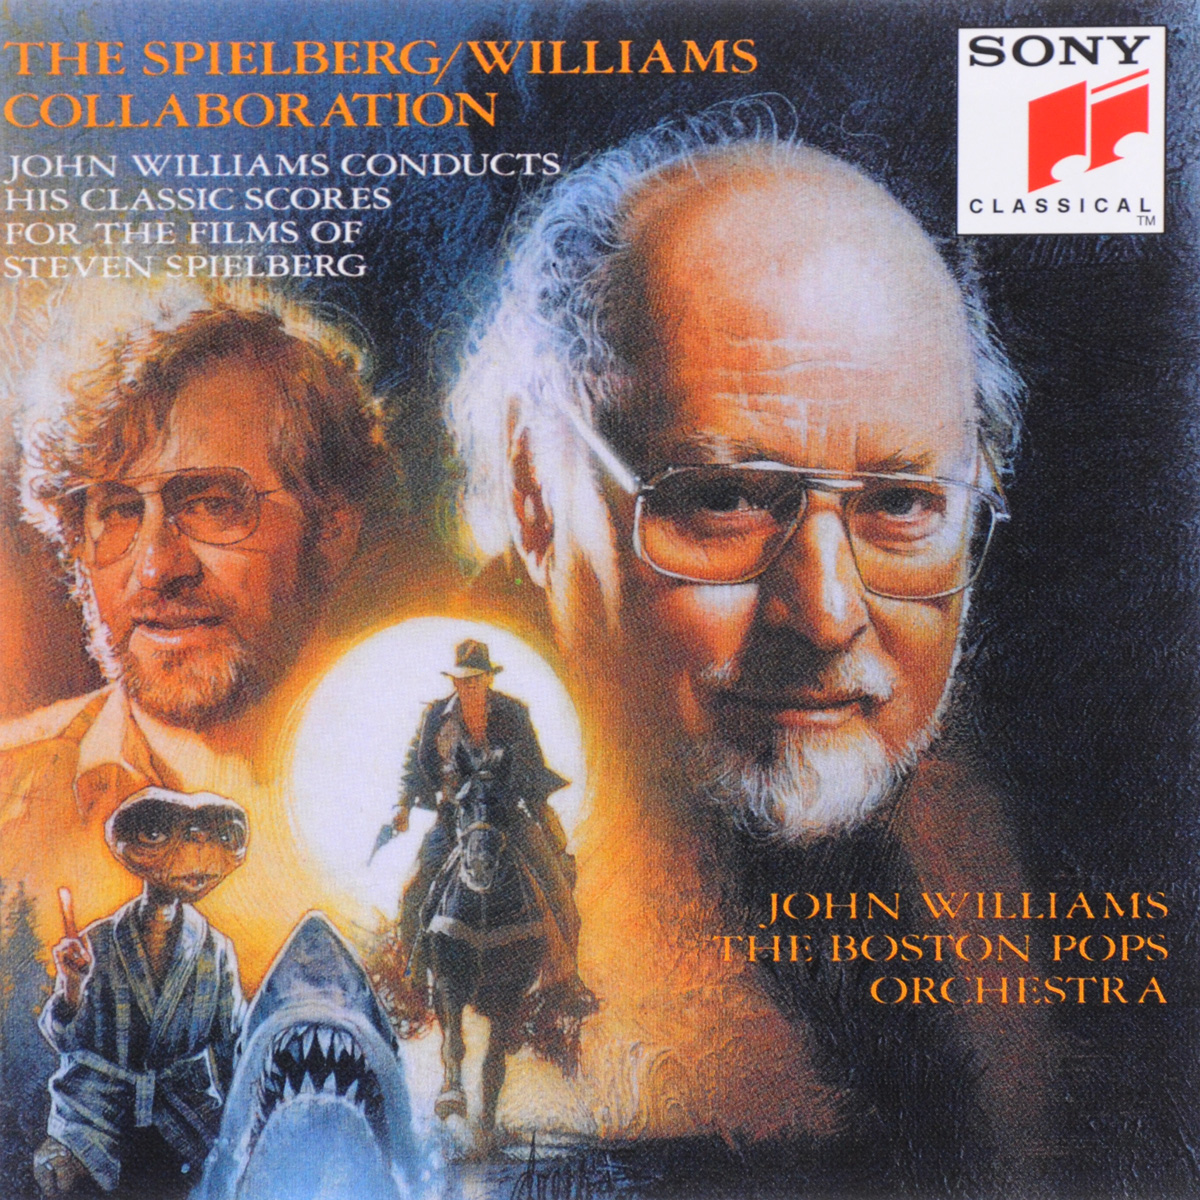 цена на Джон Уильямс,The Boston Pops Orchestra John Williams. The Spielberg / Williams Collaboration